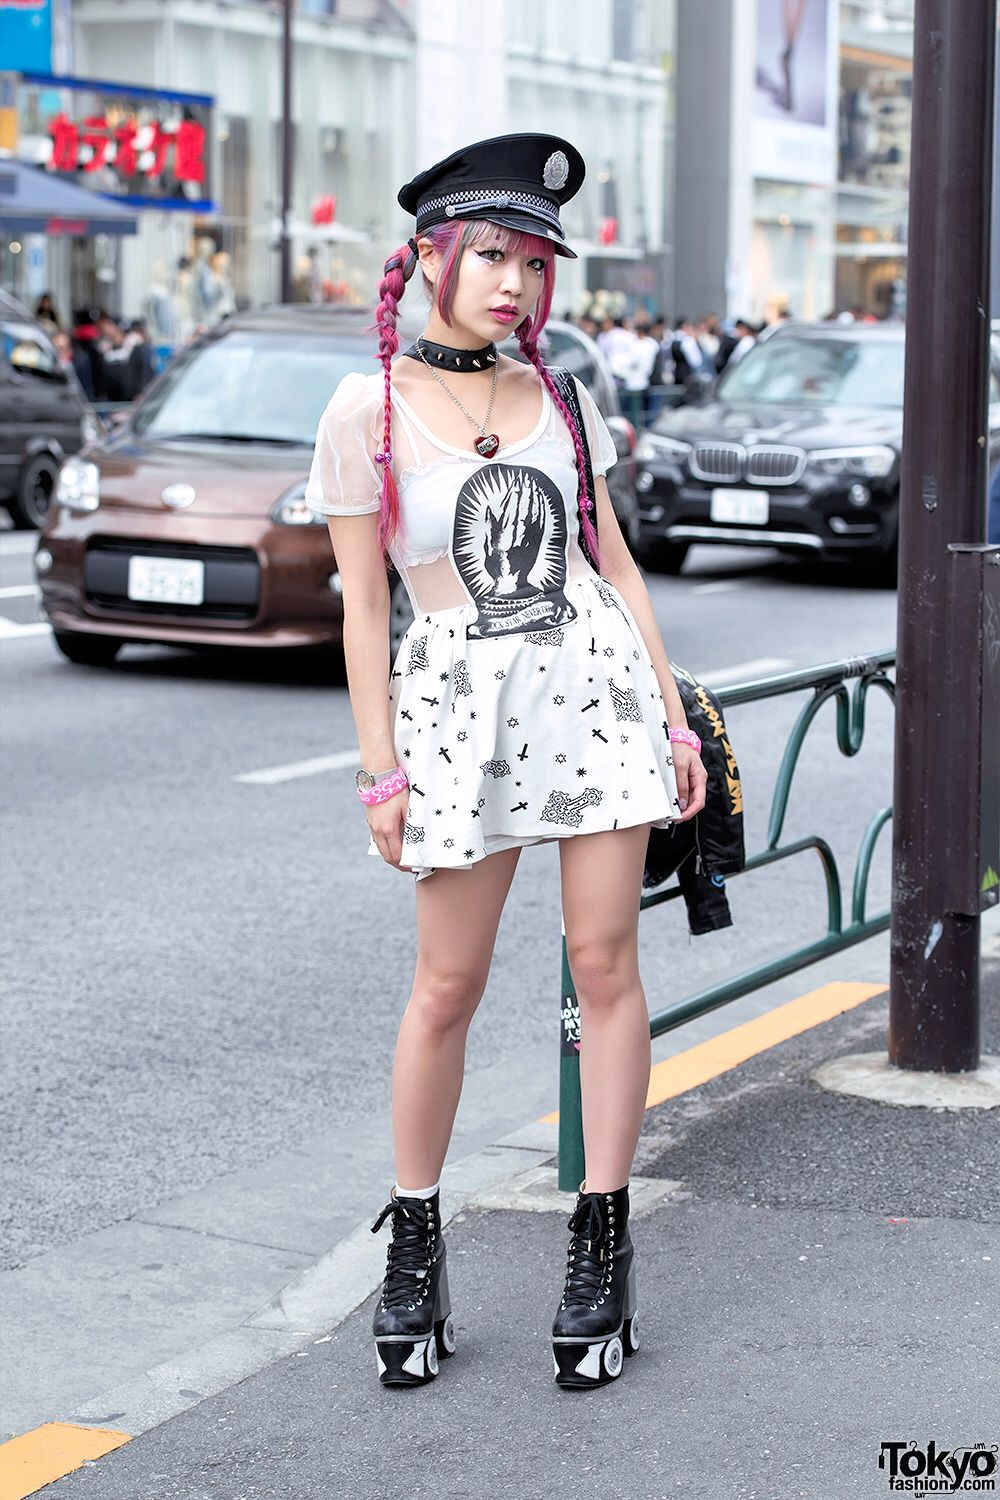 Harajuku Monster Girl Asachill On The Street Wearing A